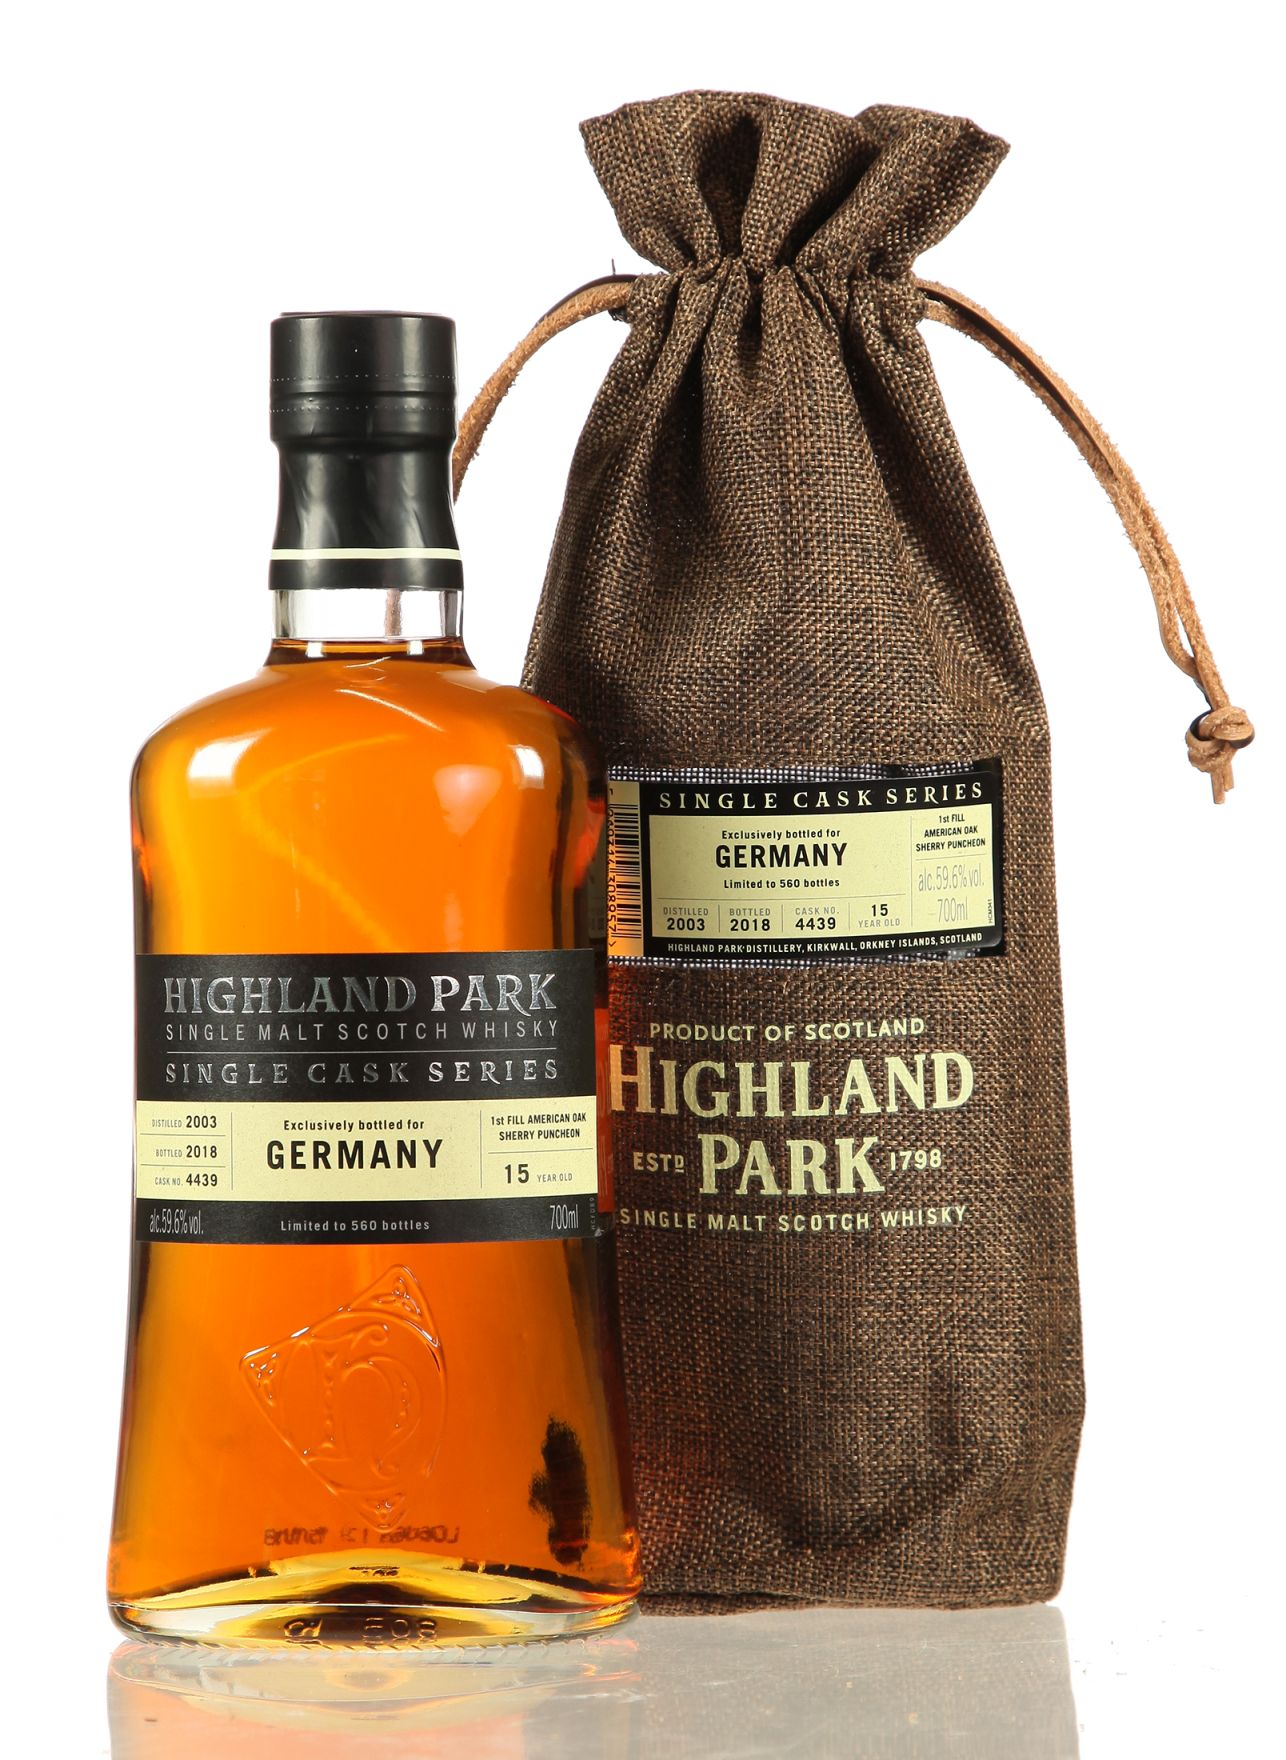 Highland Park Single Cask Bottled for Germany